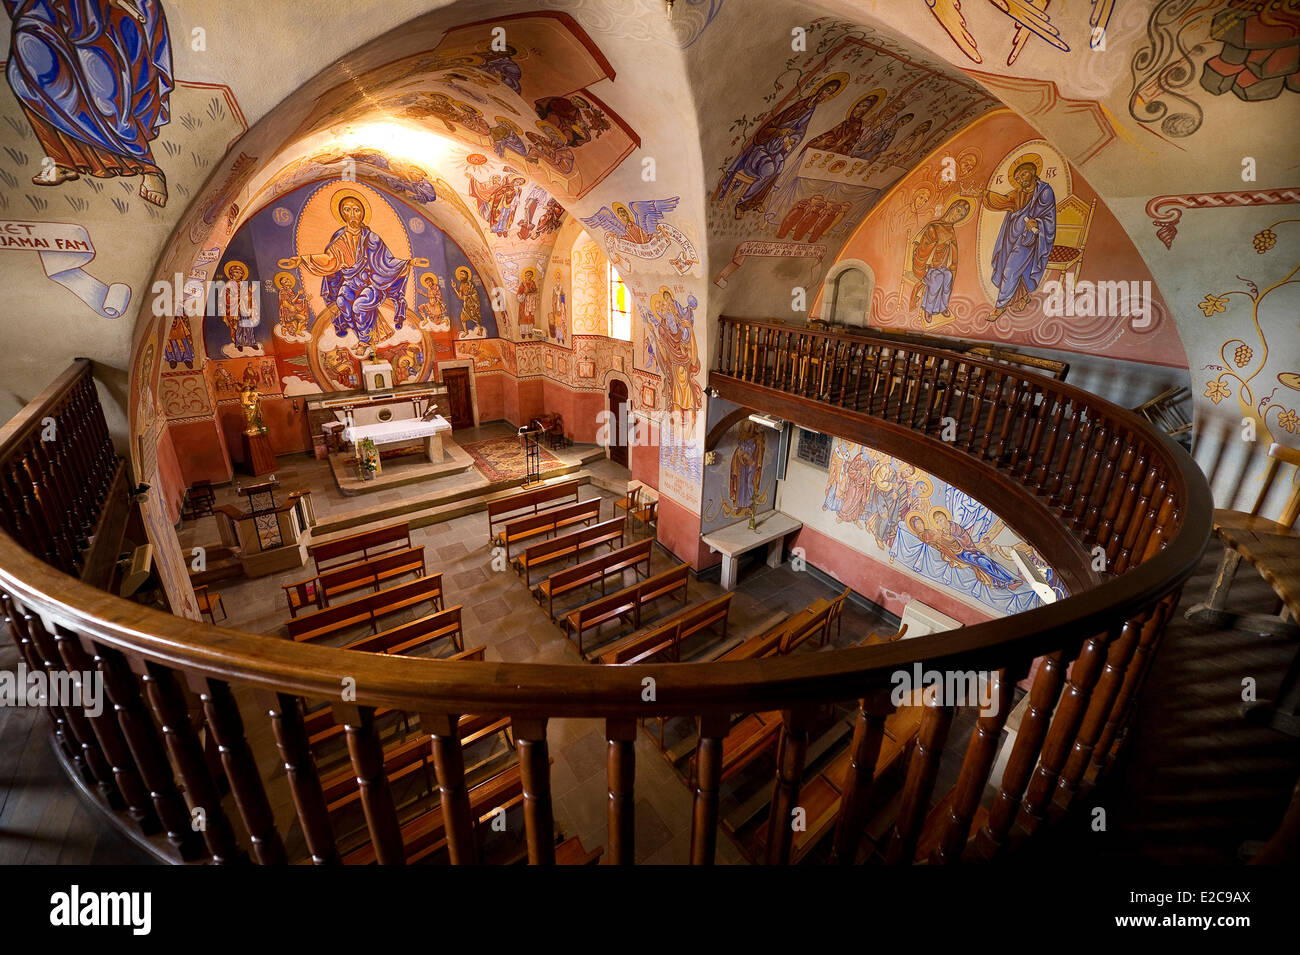 France, Aveyron, Saint Victor et Melvieu church decorated by the painter Nicolai Greschny - Stock Image